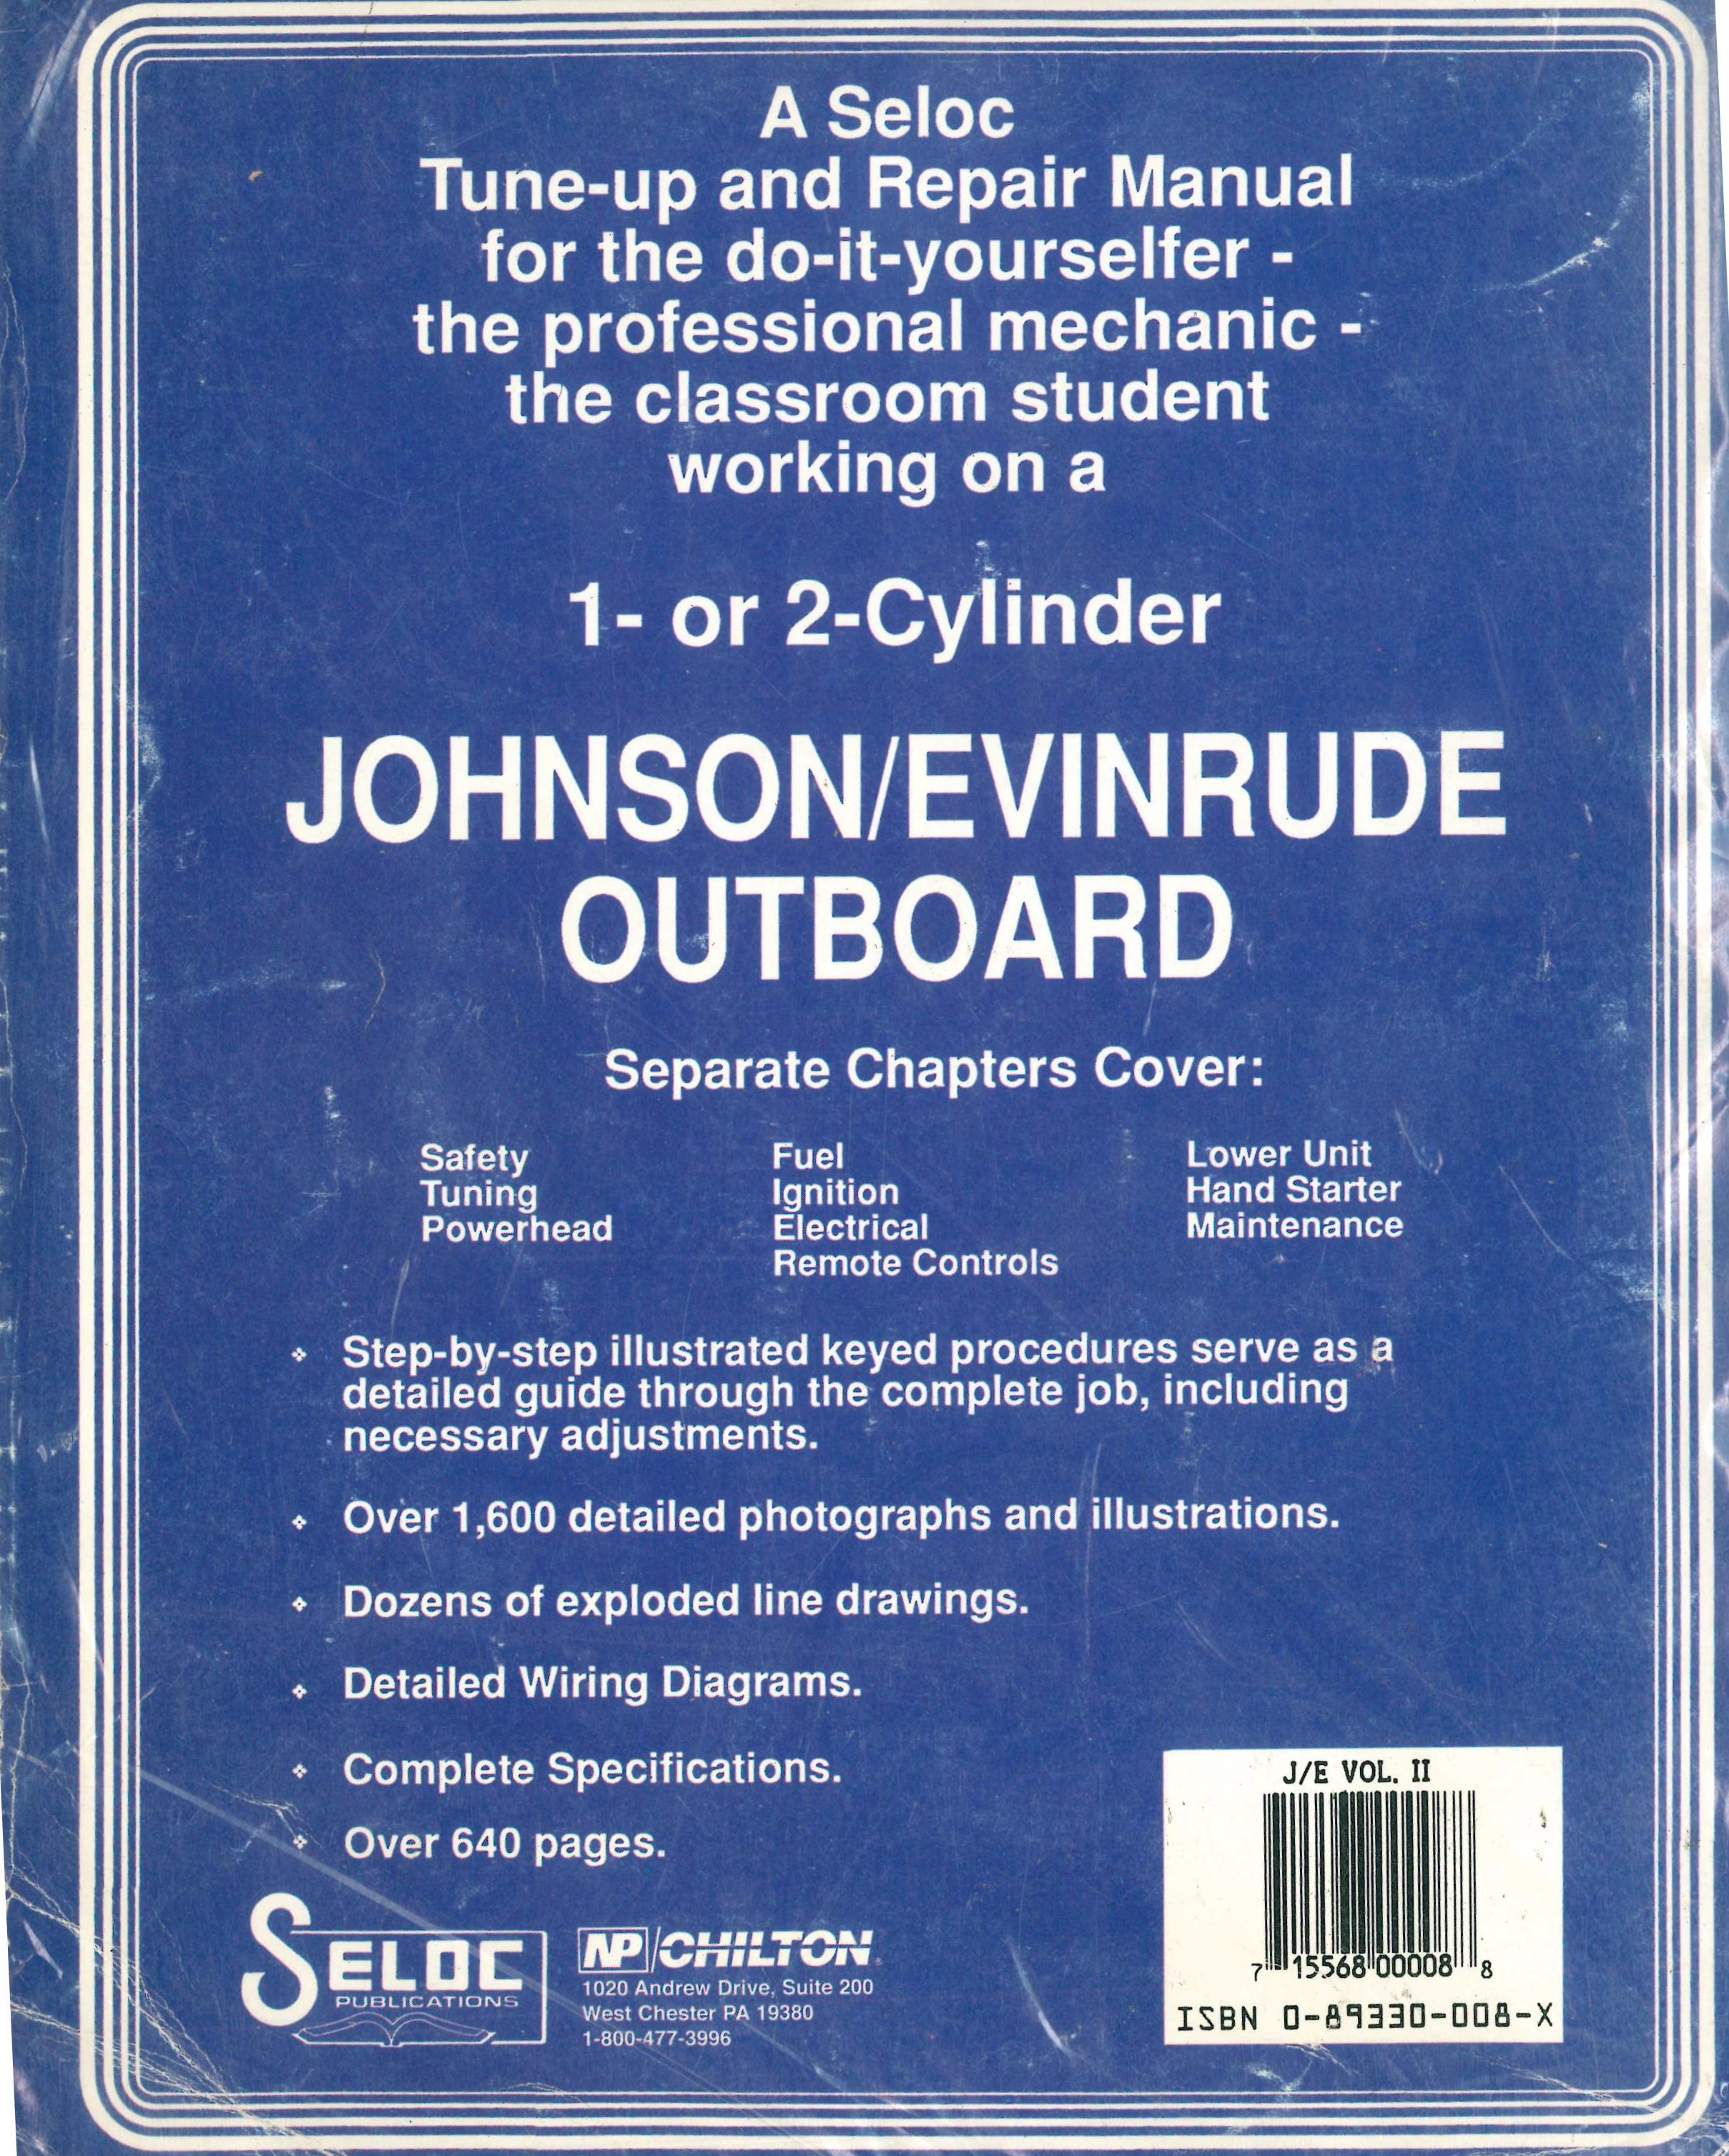 used seloc 1971 1989 johnson evinrude 1 and 2 cylinder outboard boat evinrude outboard engine diagram used seloc 1971 1989 johnson evinrude 1 and 2 cylinder outboard boat engine repair manual